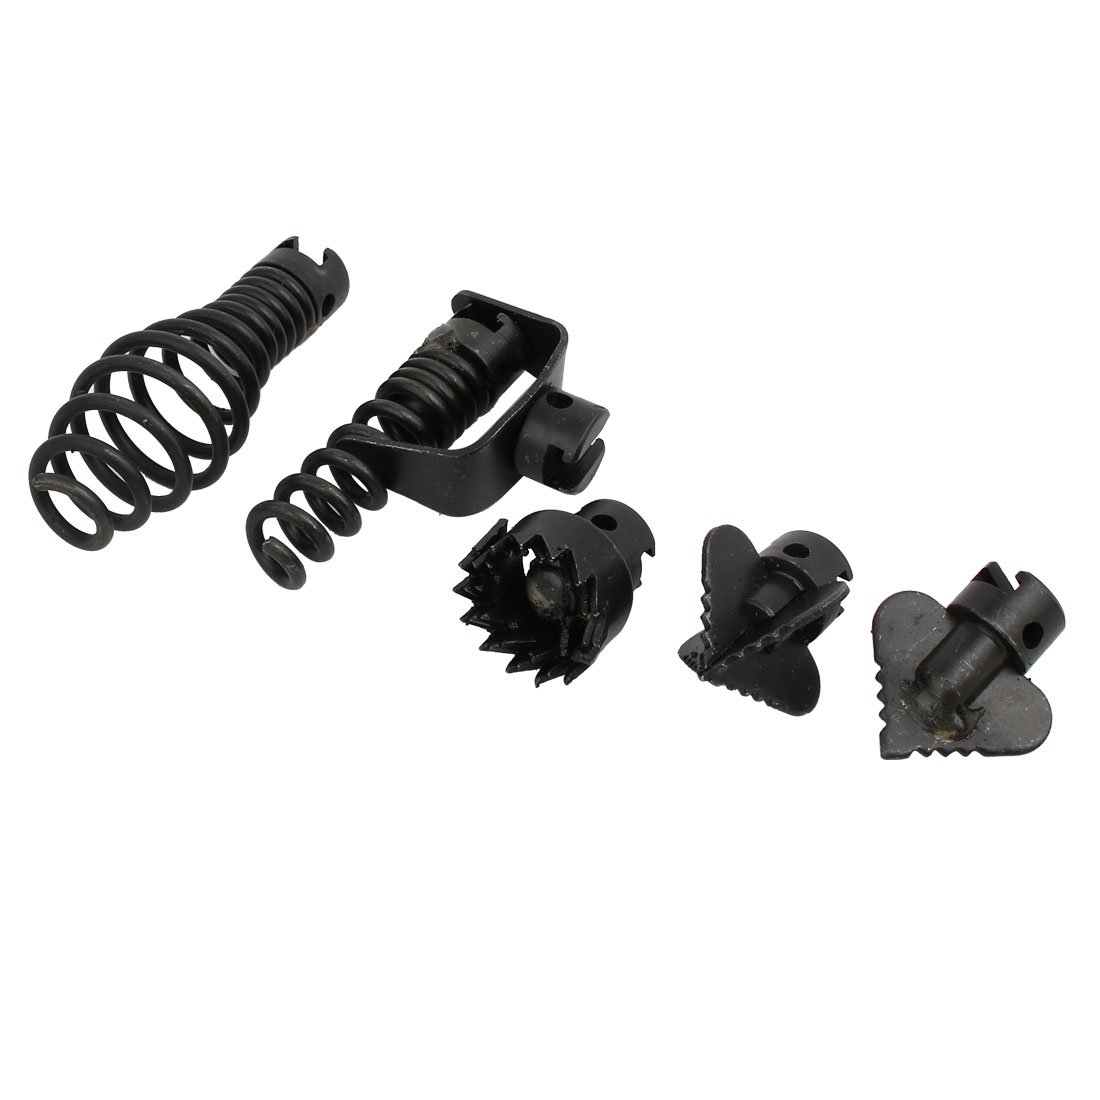 uxcellManganese Steel Drain Cleaner Combination Cutter Set Black